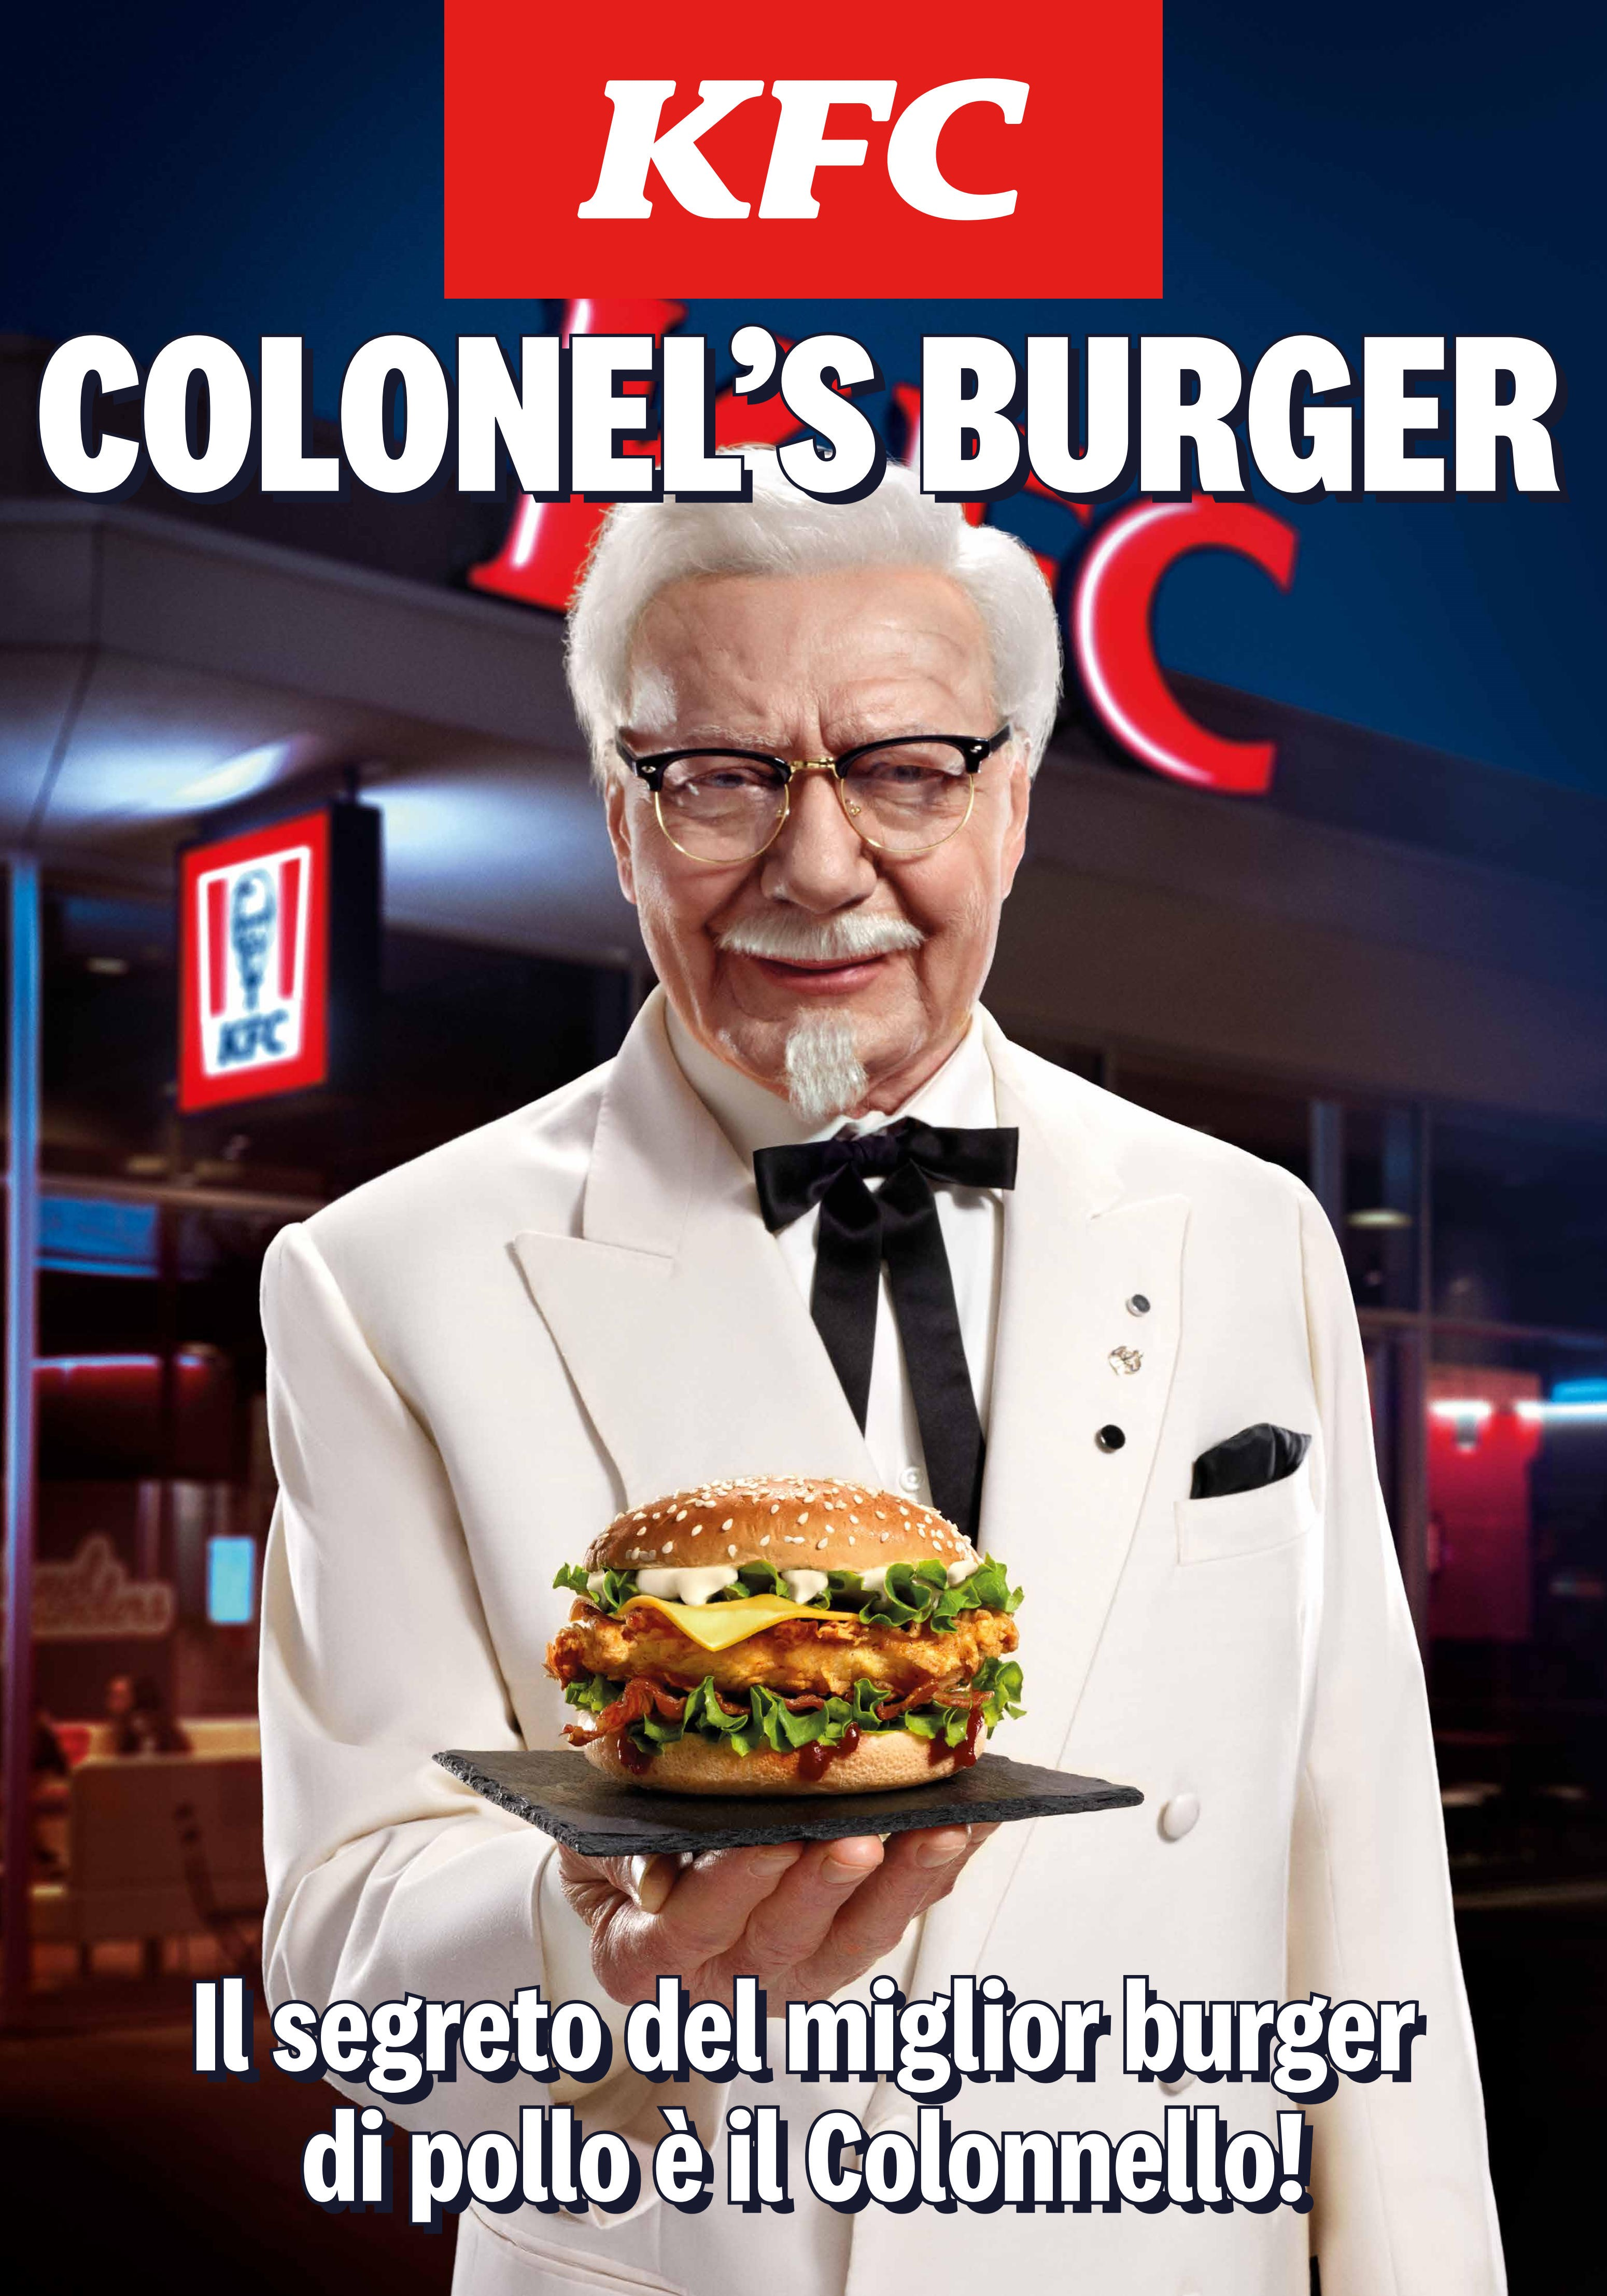 THE BEST FRIED CHICKEN BURGER? IT HAS THE COLONEL'S SIGNATURE!